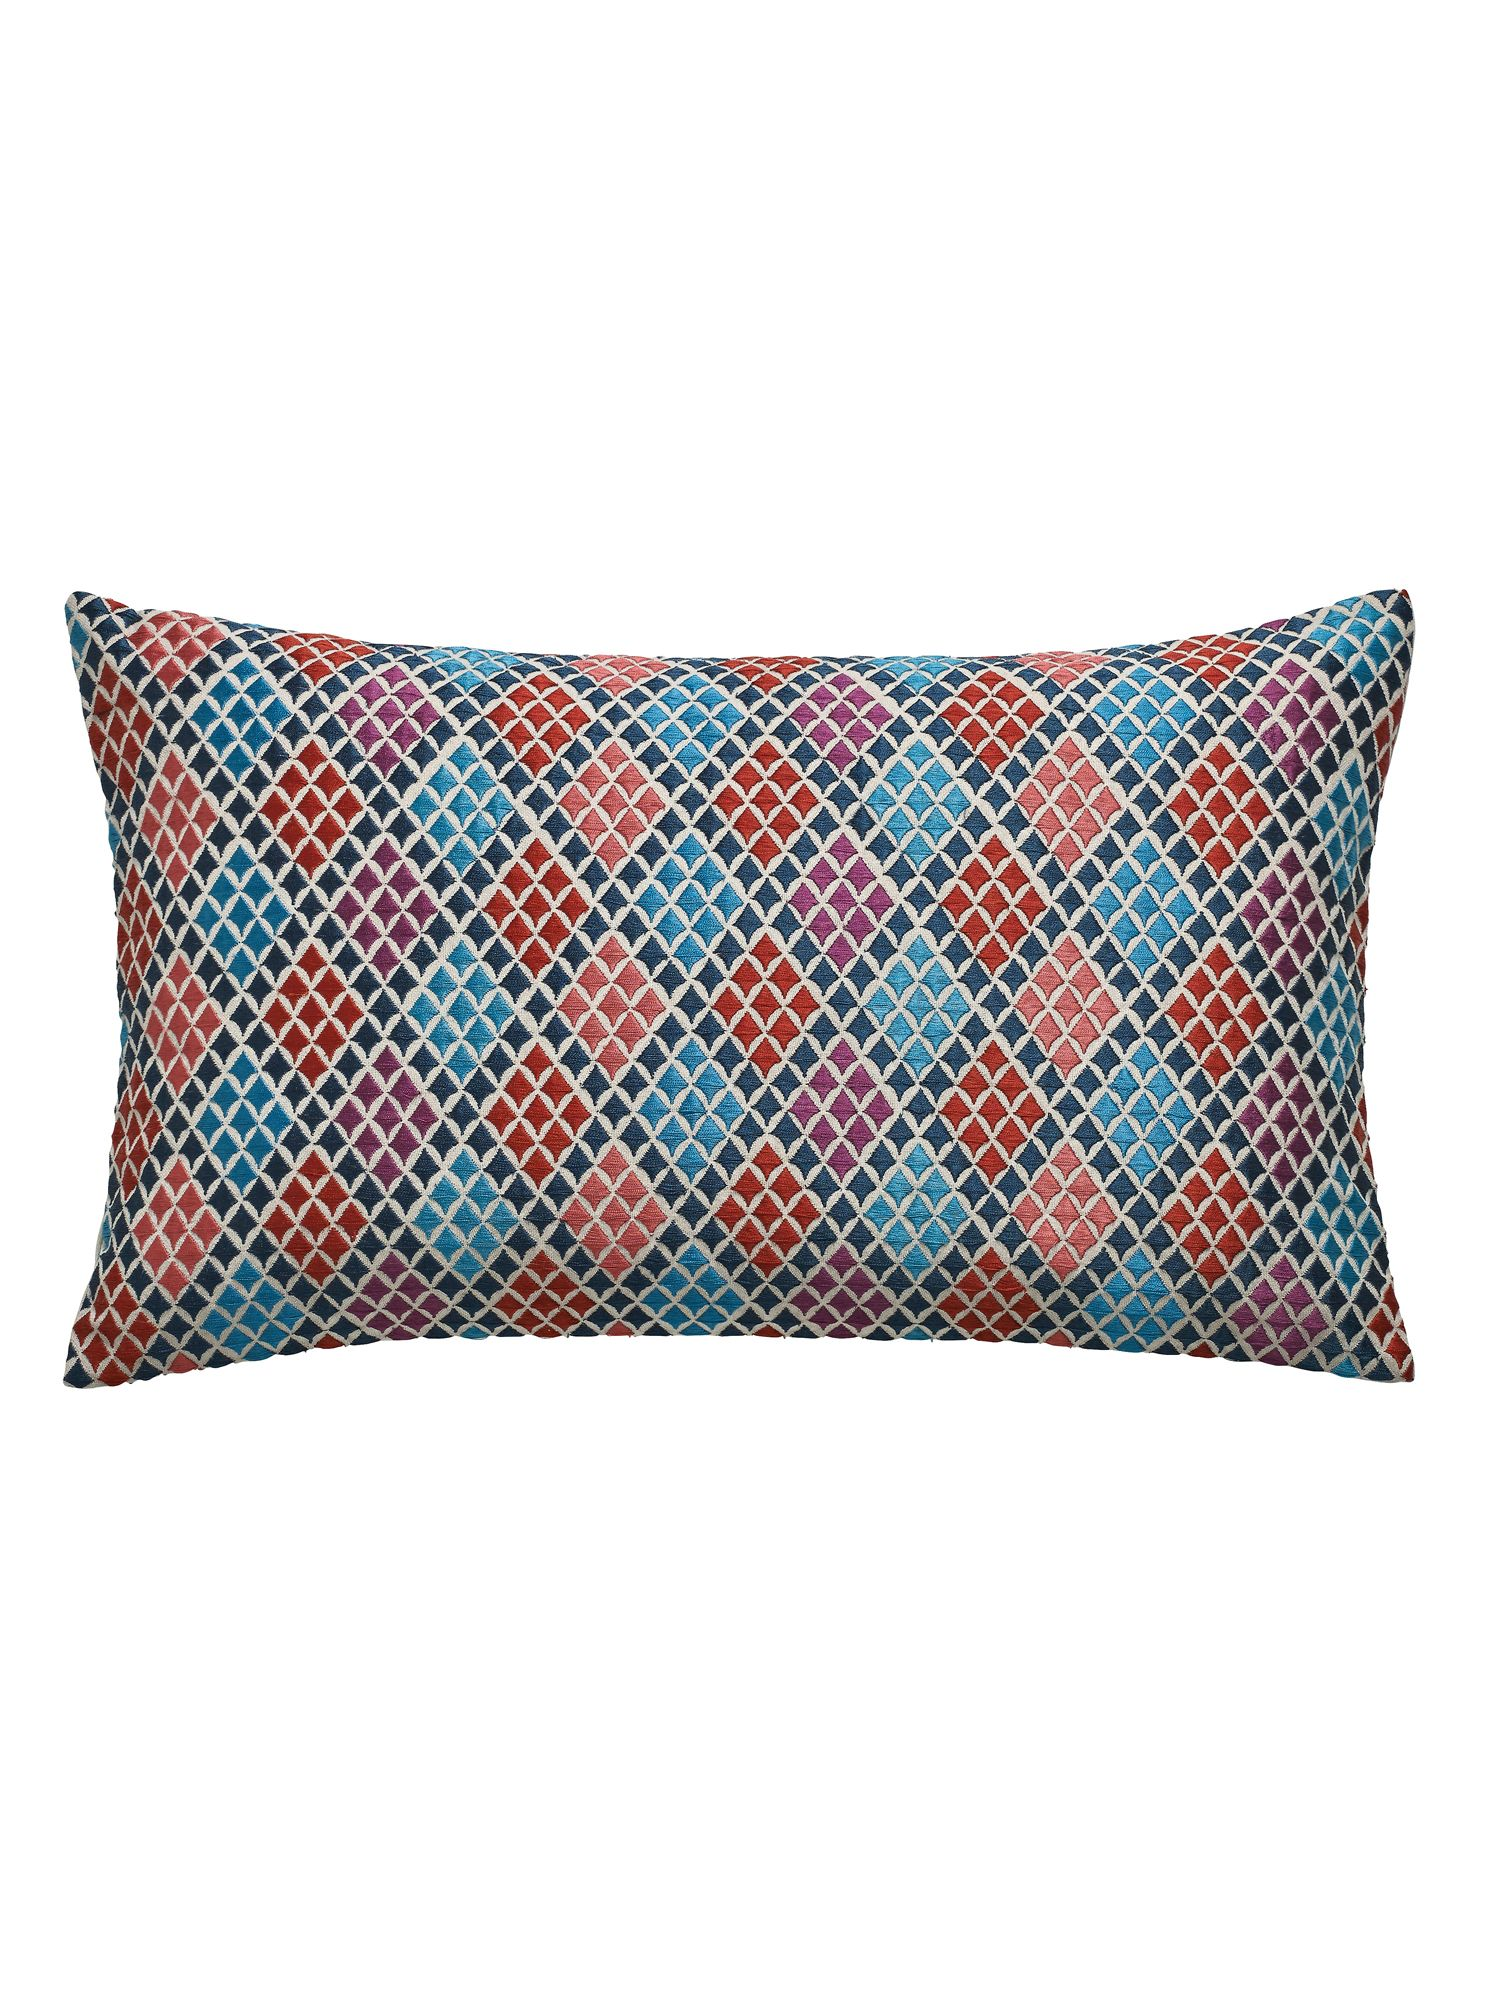 Image of Bedeck 1951 Alba cushion 50X30cm calypso